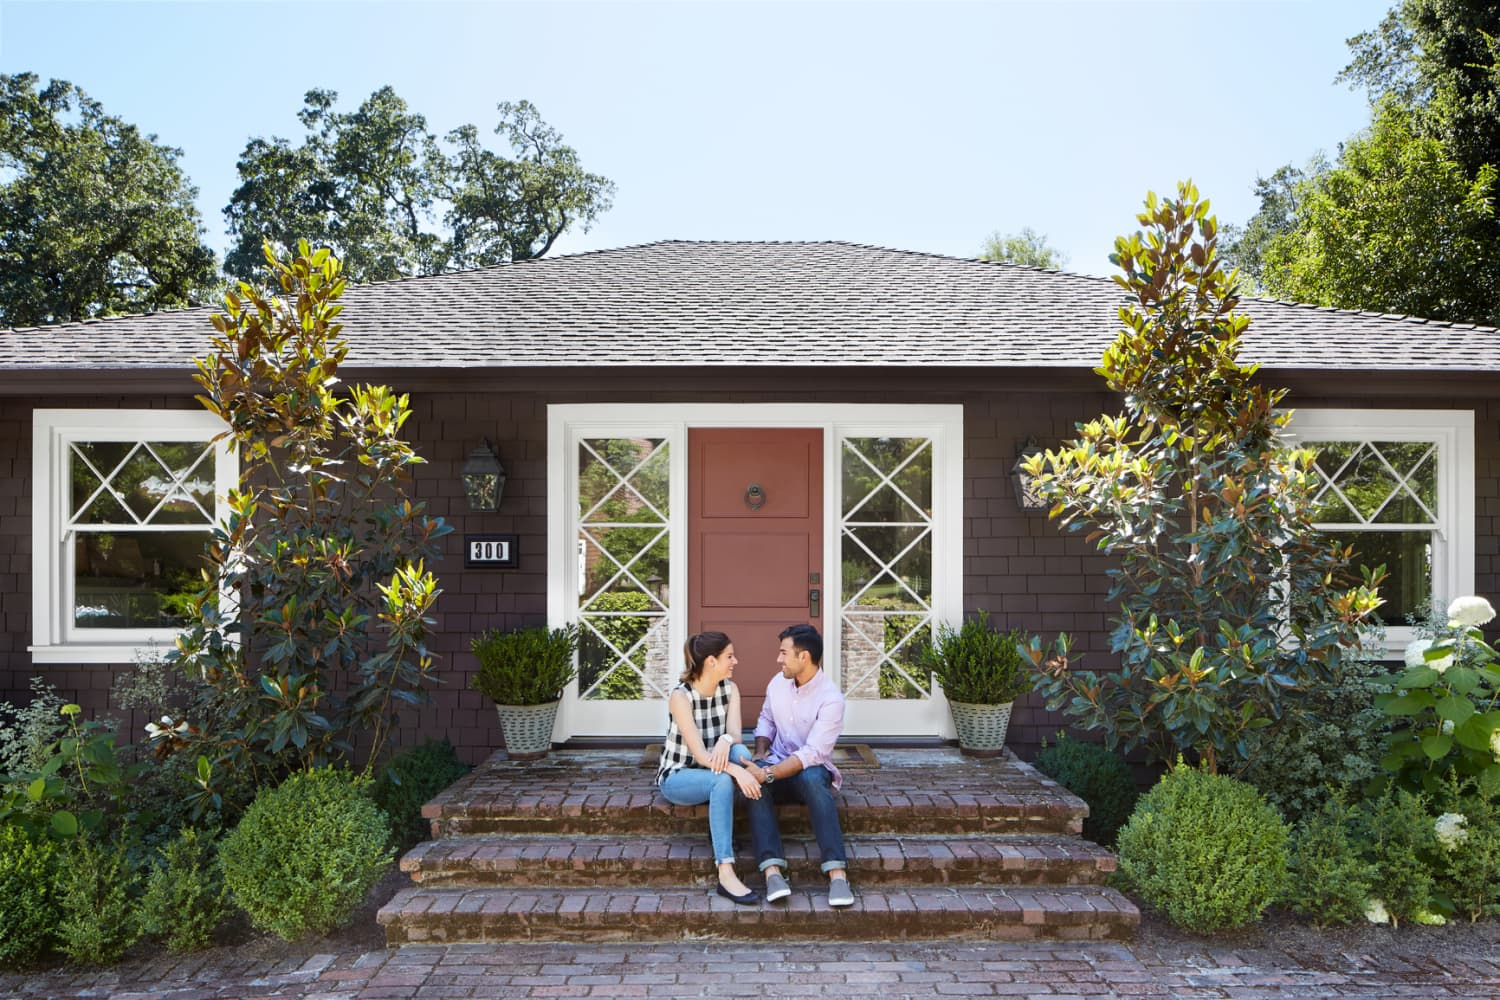 8 People You Need When Buying a Home, According to Experts